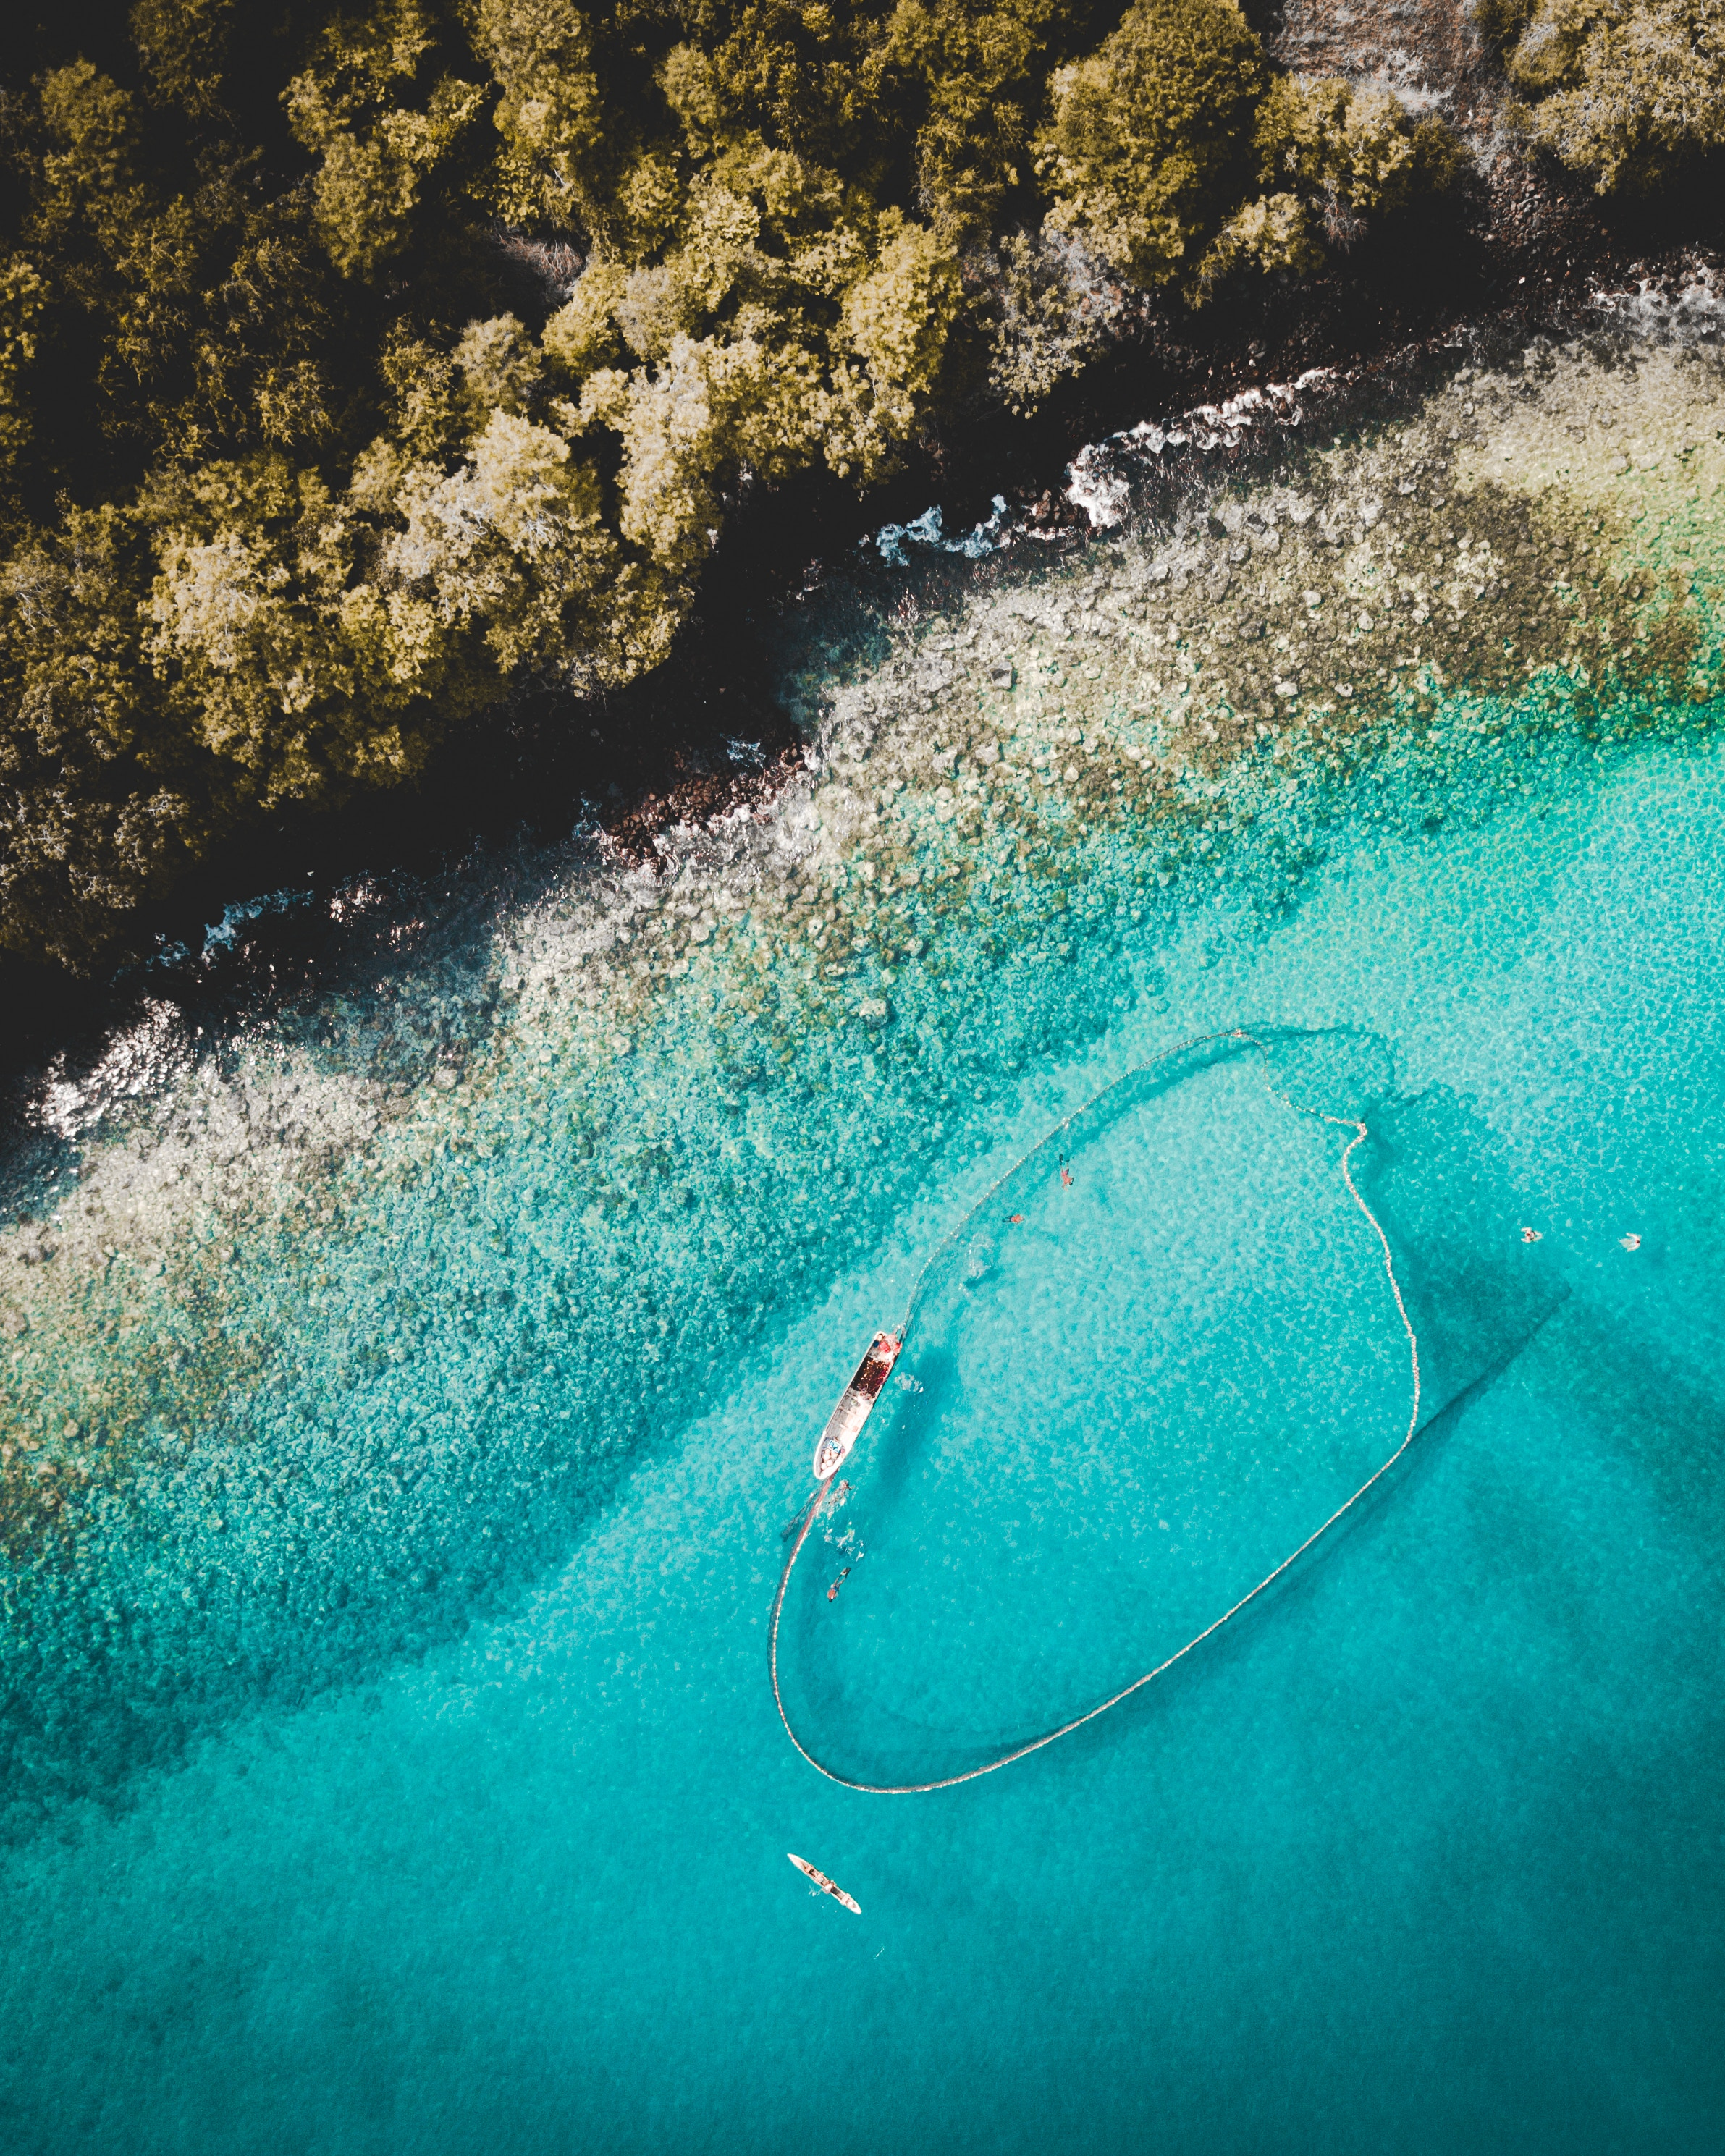 Image Of Fishing Net In Water By @joaopedrodesign Via Unsplash.com